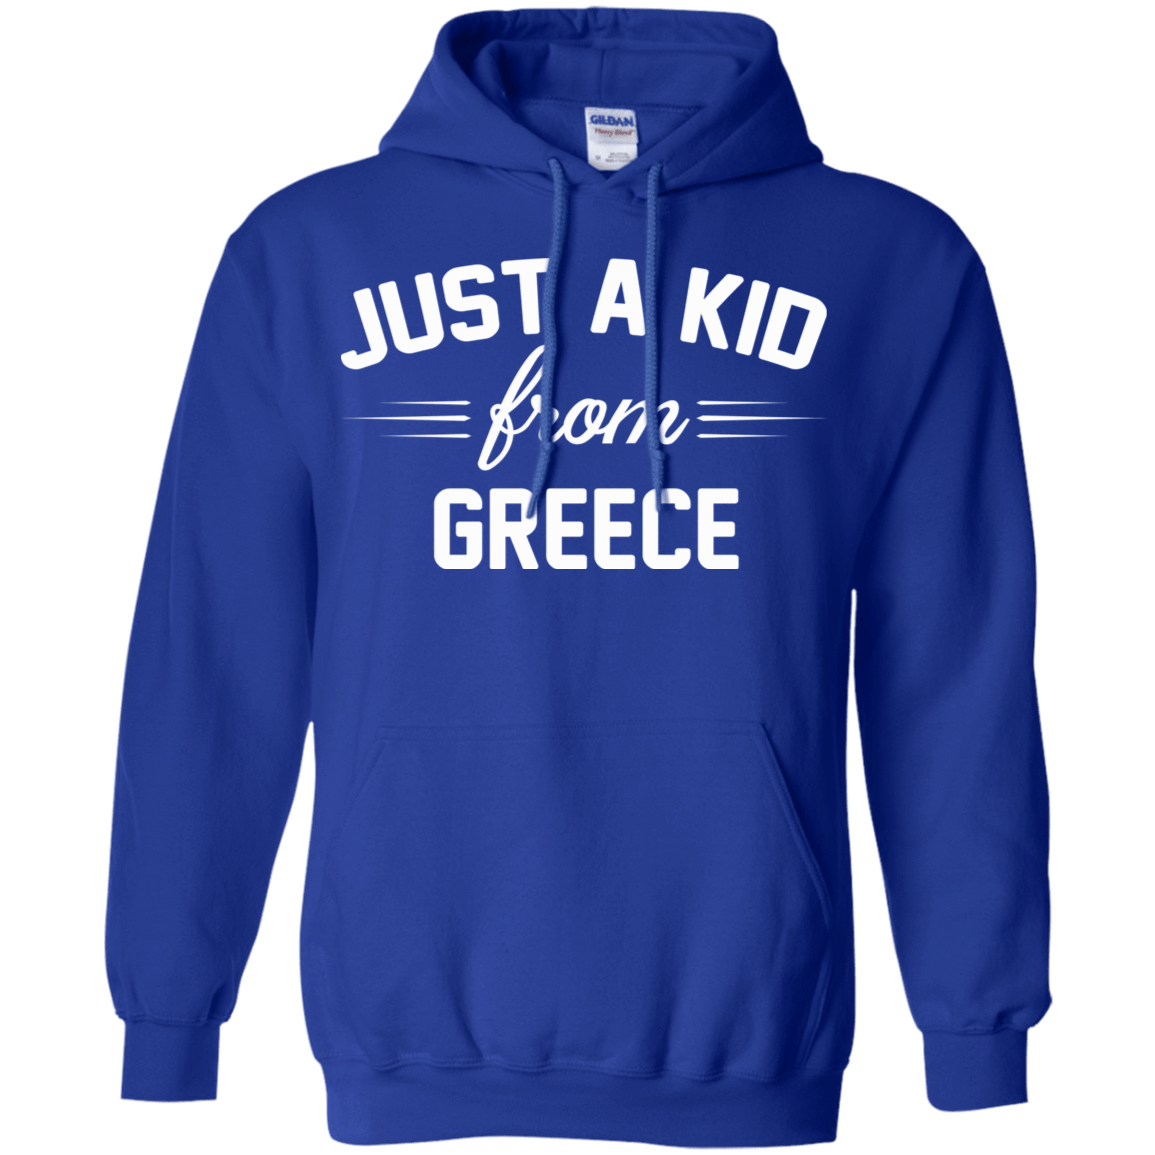 Just a Kid Store | Greece T-Shirts, Hoodie, Tank 541-4765-72091636-23175 - Tee Ript